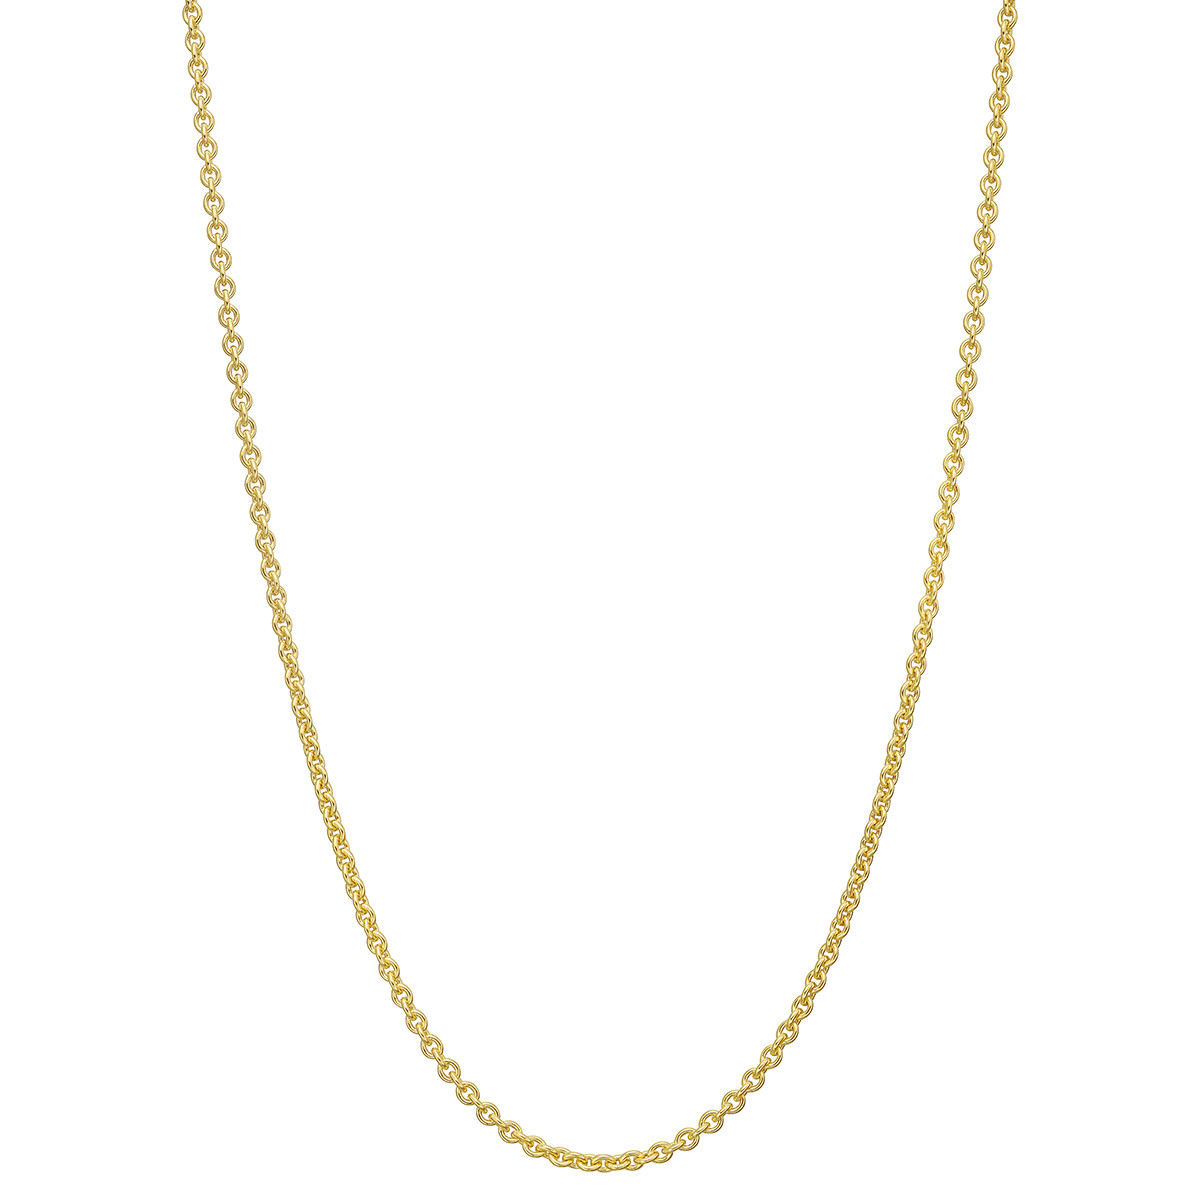 "18k Yellow Gold Round Link Chain Necklace (18"")"